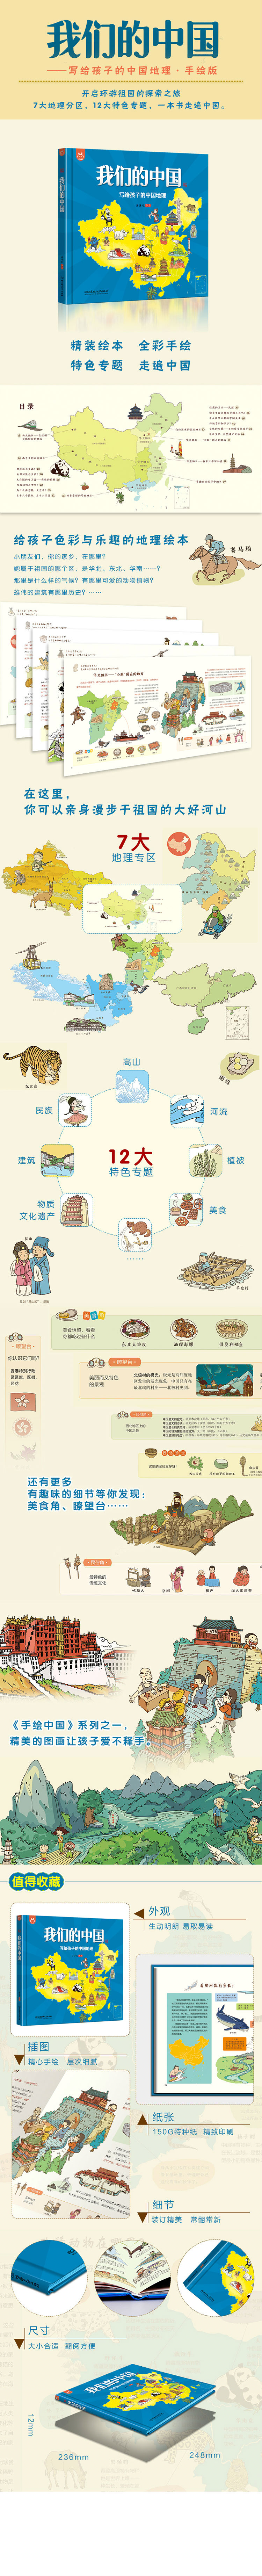 Chinese Geography Our China Chinese Geography For Kids